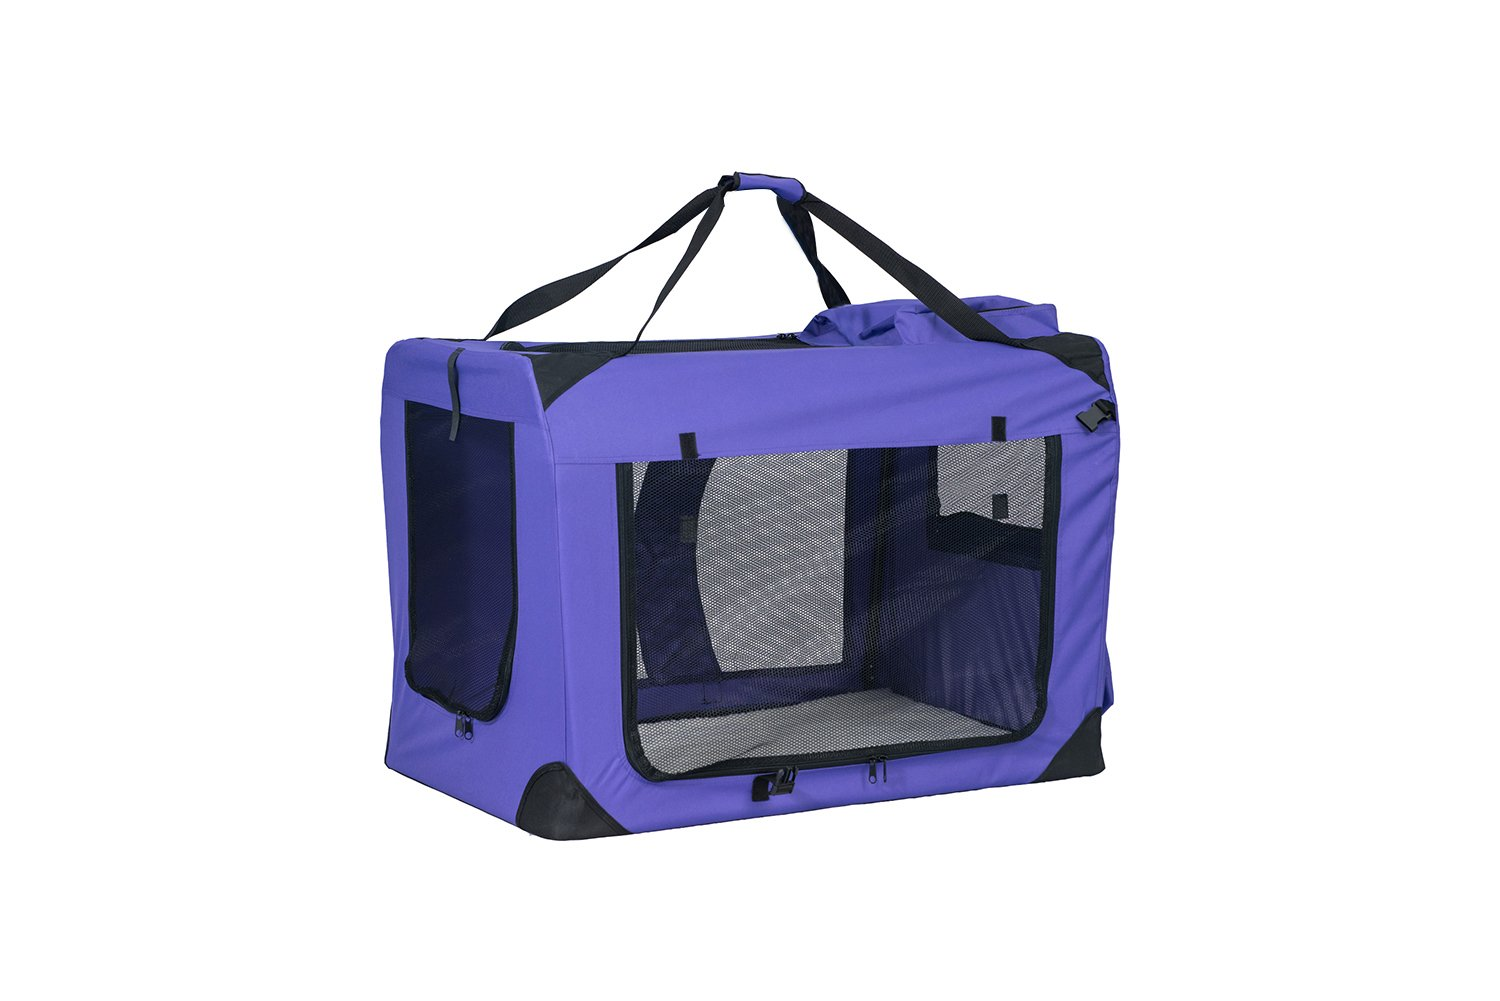 BuyHive Pet Dog Carrier Travel Tote Dog Crate Cat Puppy Carrying House Training Kennel Portable (Large, Purple)